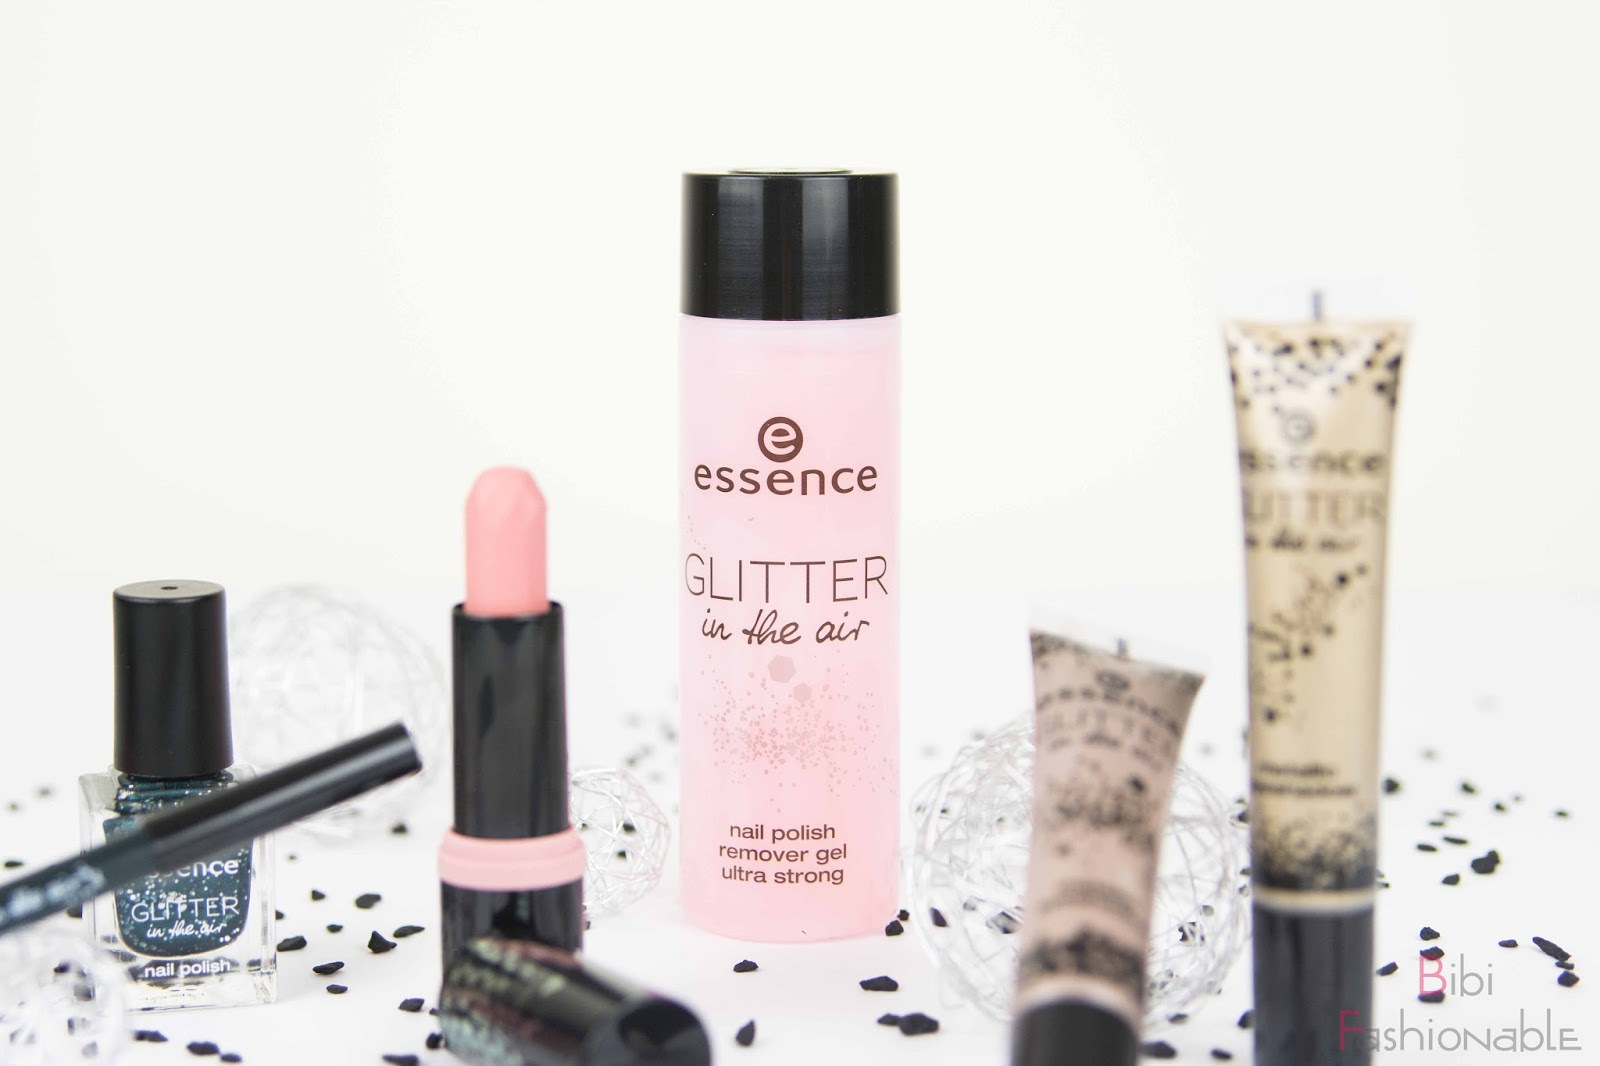 essence trend edition glitter in the air nail polish remover gel